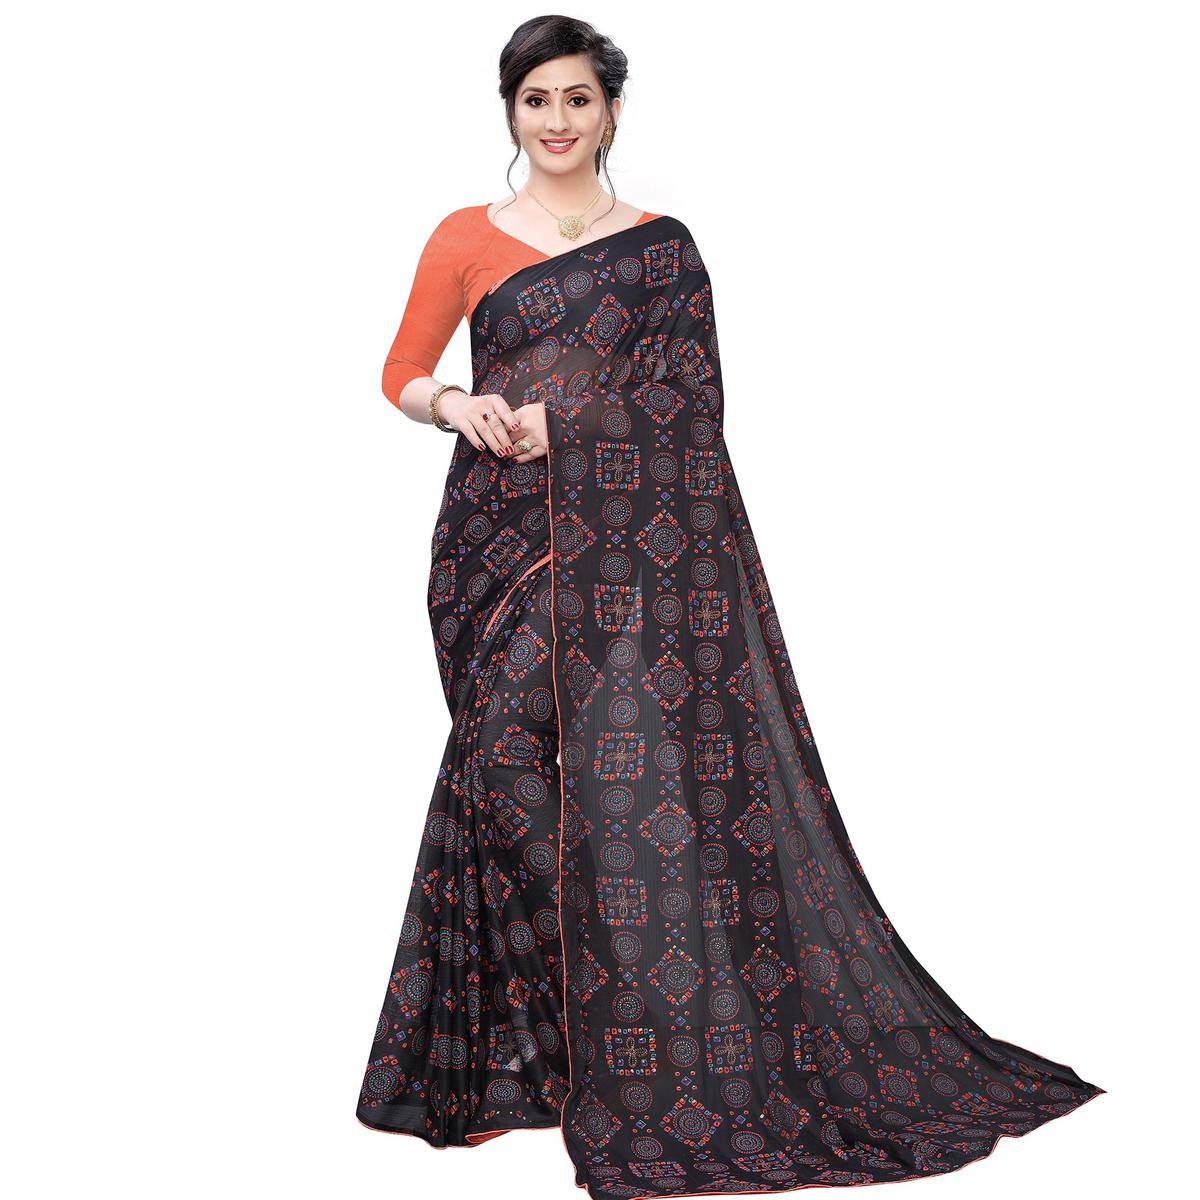 Charming Black Colored Casual Wear Printed Lycra Blend Saree